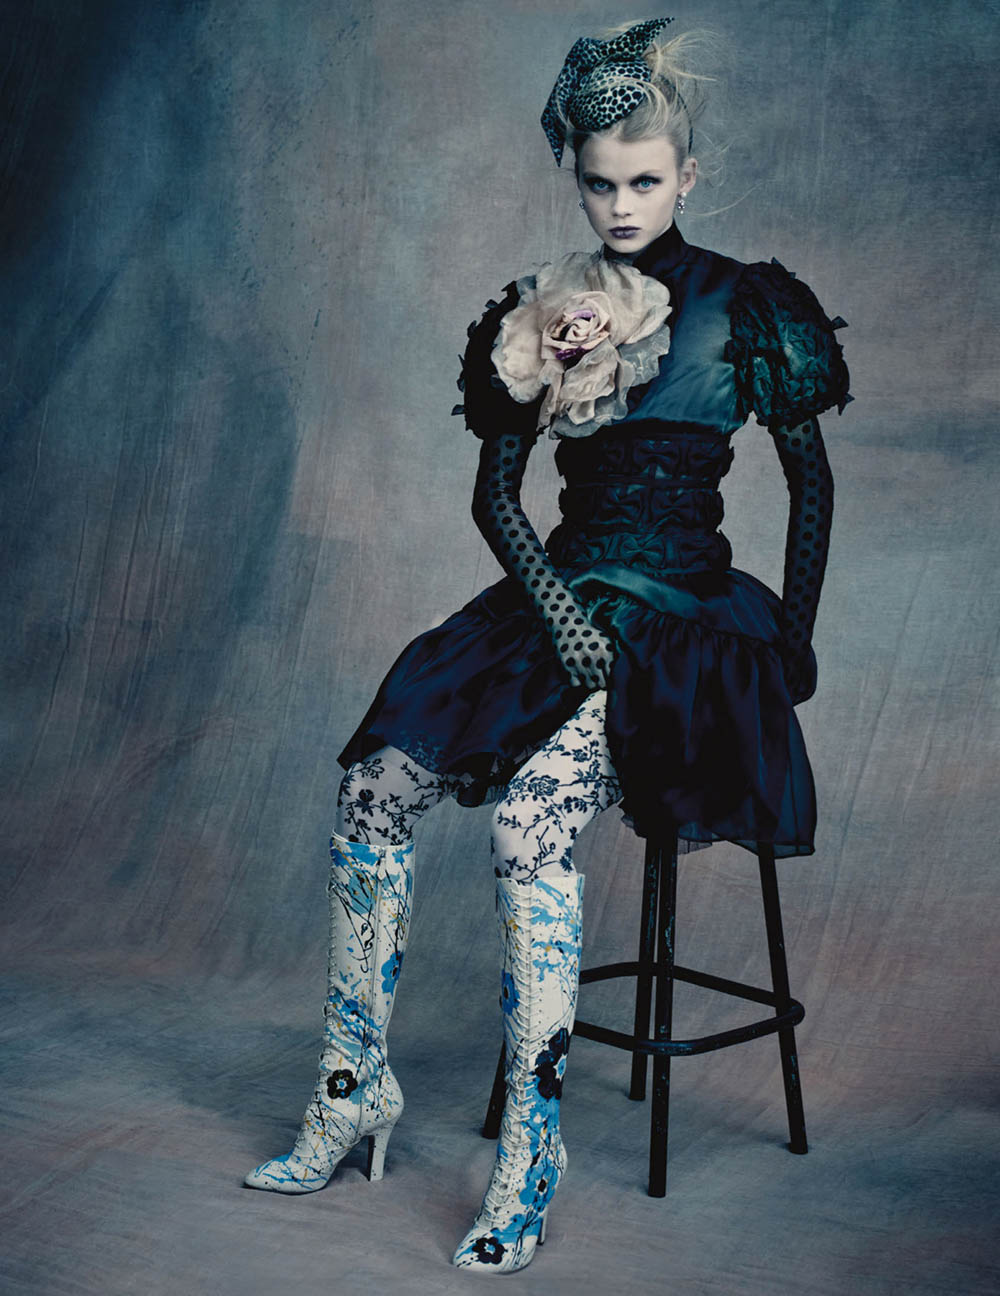 Evie Harris and Tess McMillan by Paolo Roversi for British Vogue June 2020